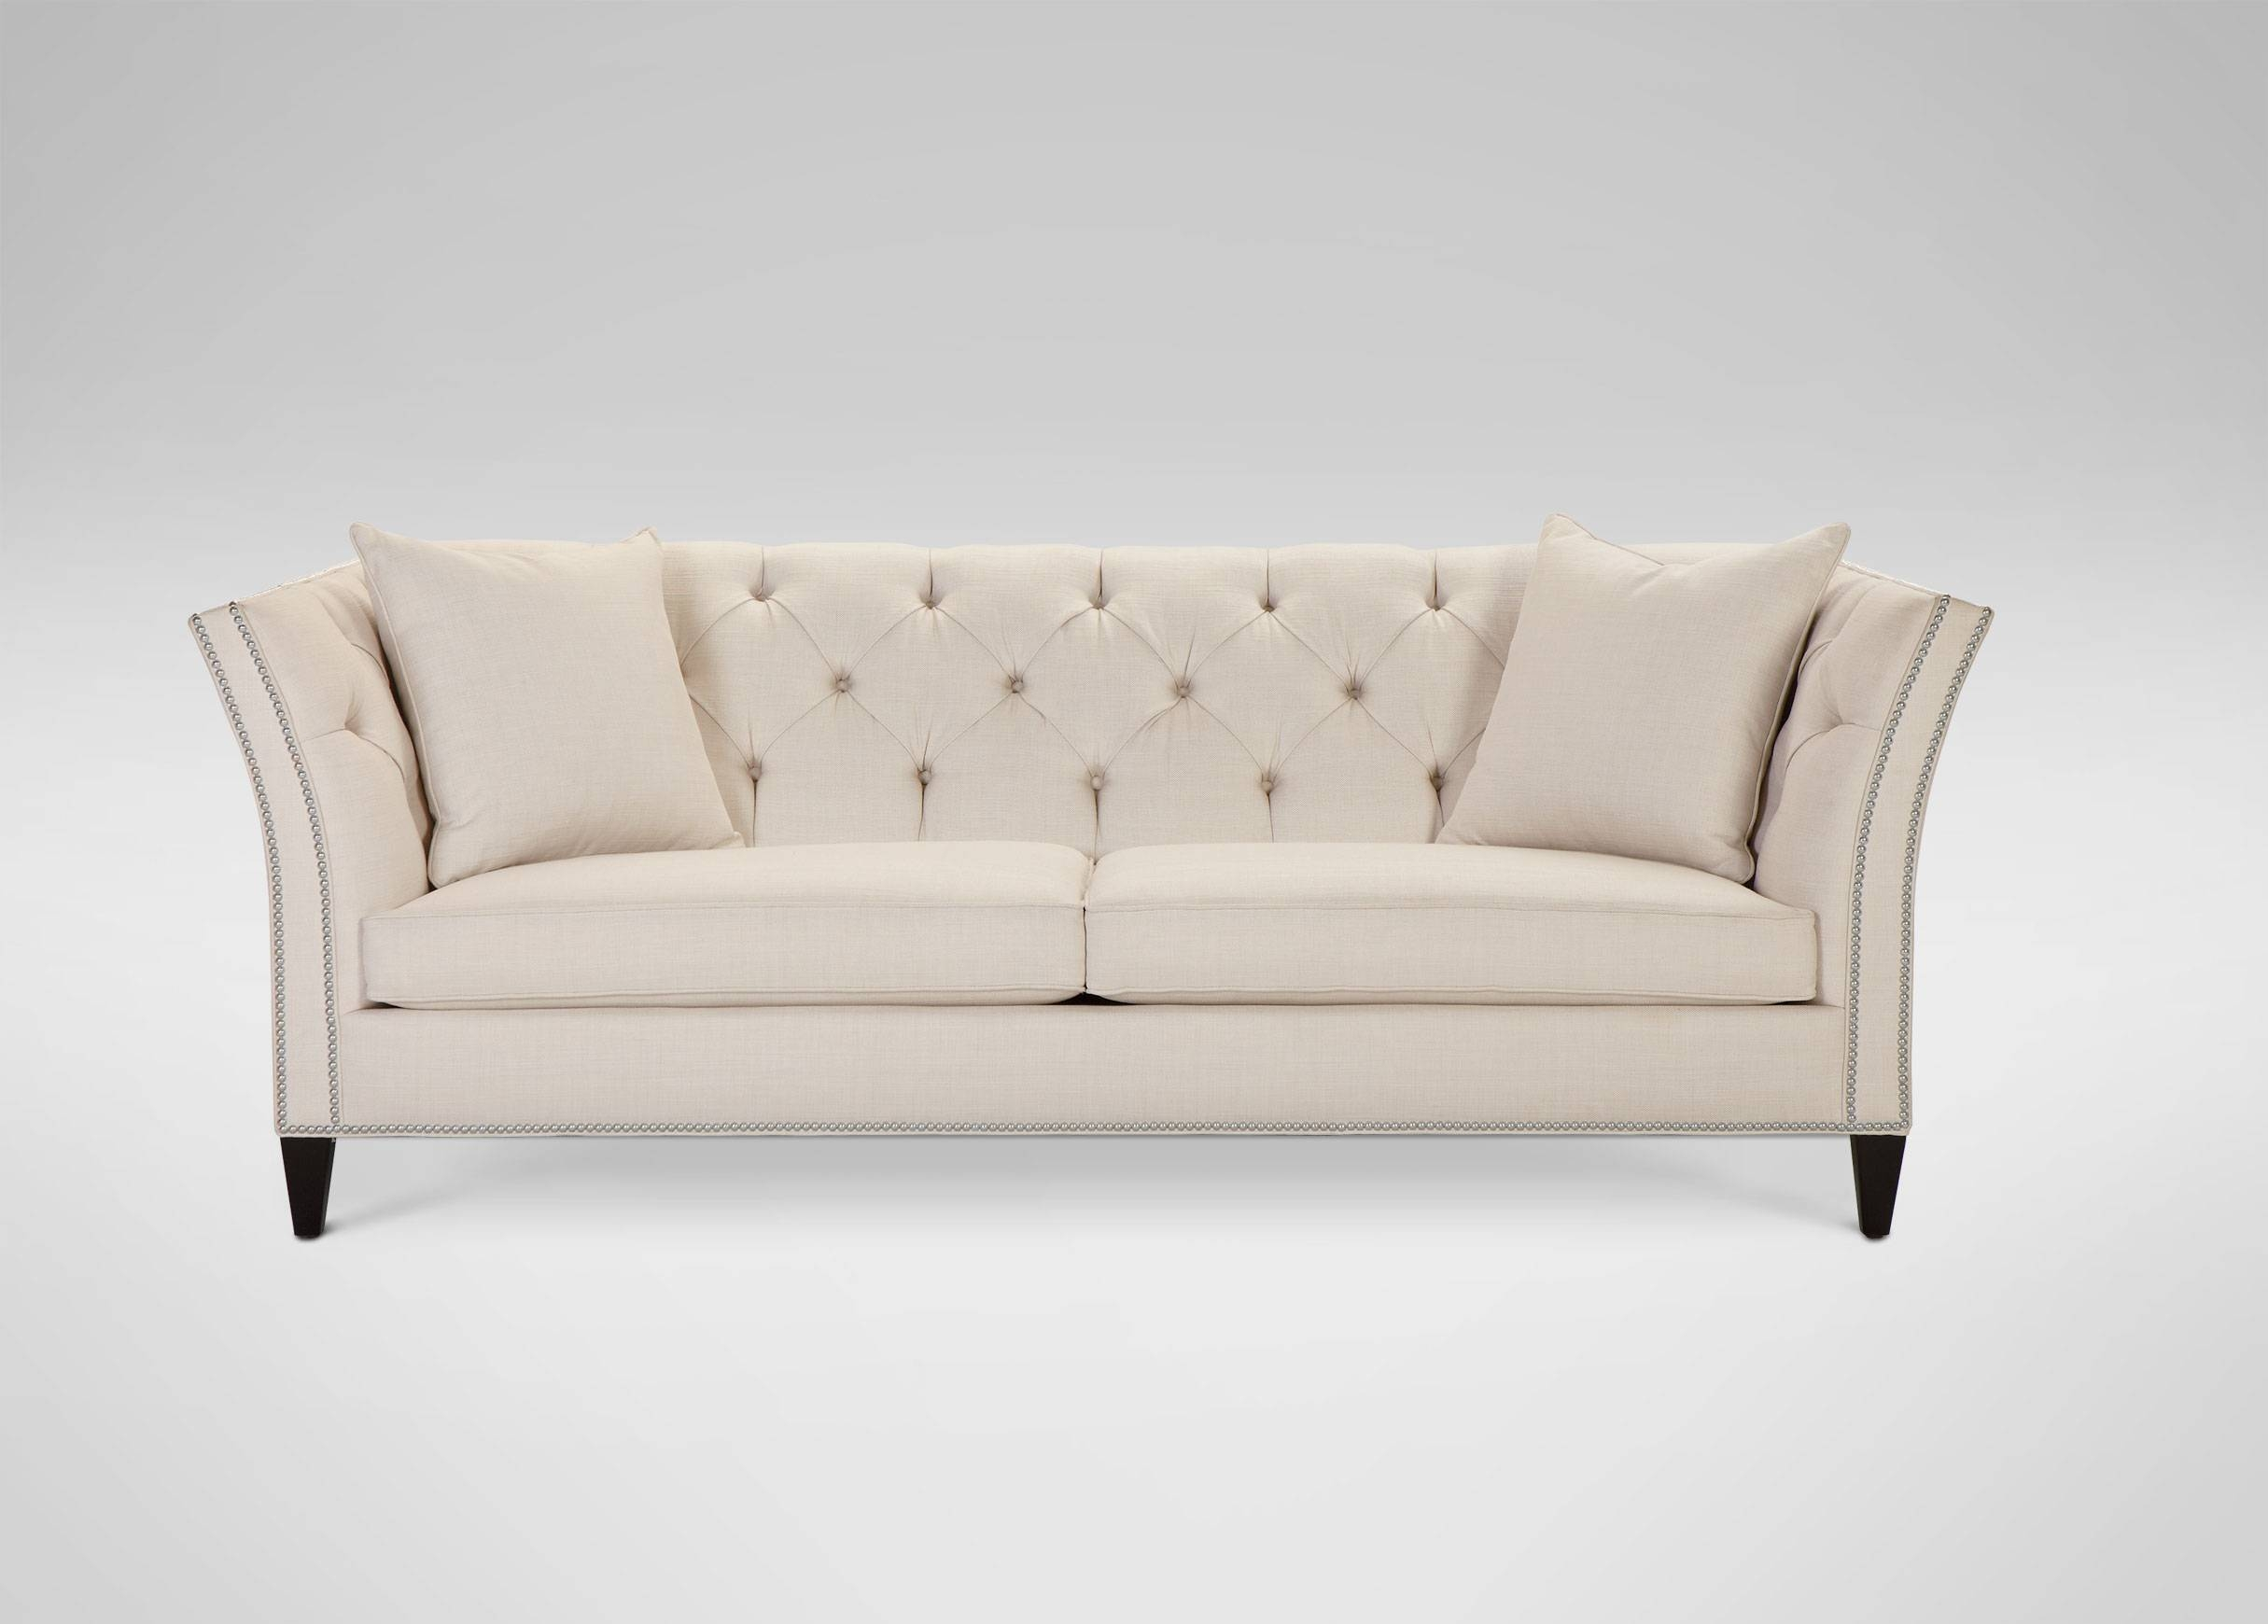 Shelton Sofa | Sofas & Loveseats throughout Ethan Allen Sofas And Chairs (Image 11 of 15)